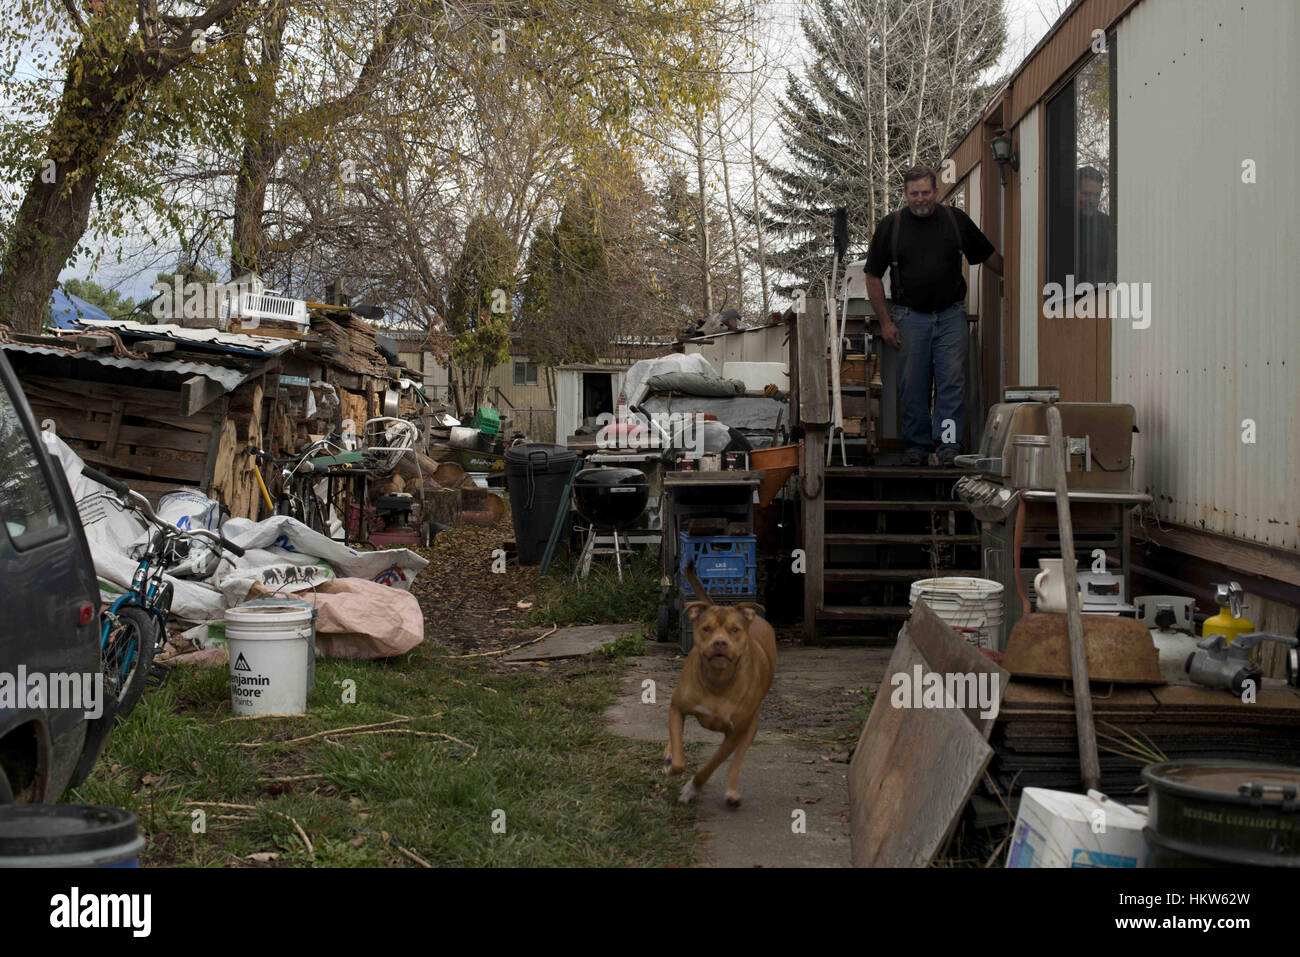 Moscow Idaho USA 17th Nov 2016 James Ware A 17 Year Resident Of Syringa Mobile Home Park In Has Been Video Documenting The Cronic